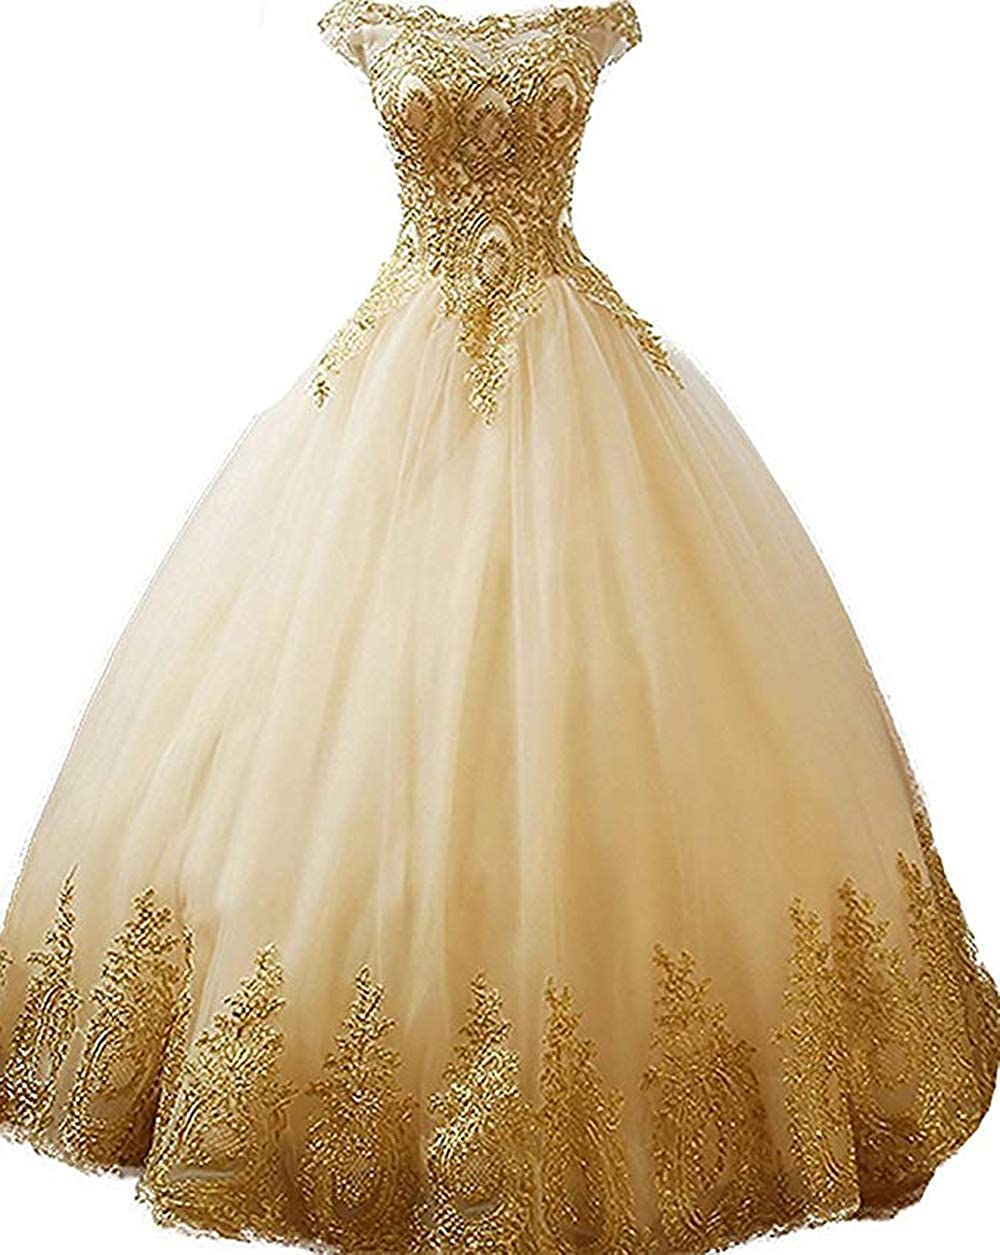 inmagicdress Women's Ball Gowns Gold Lace Appplique Dress